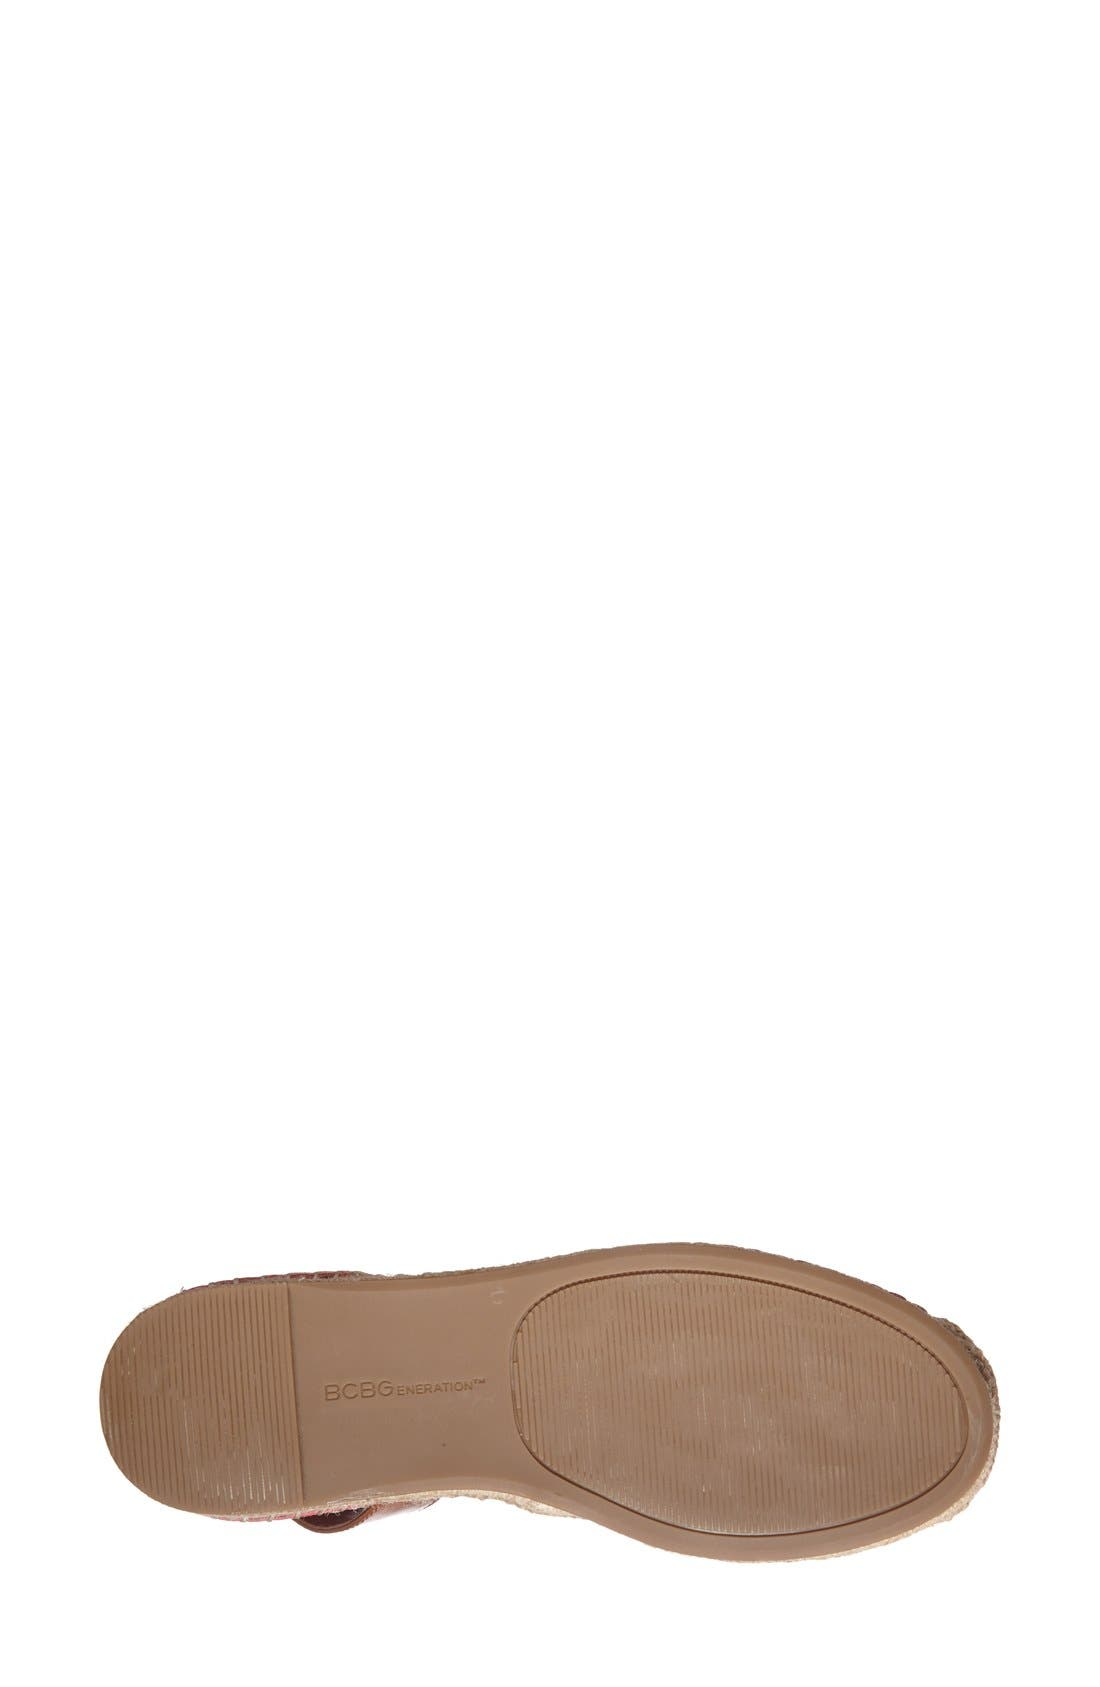 'Felicity 2' Ankle Strap Espadrille Flat,                             Alternate thumbnail 4, color,                             Passion/ Toffee